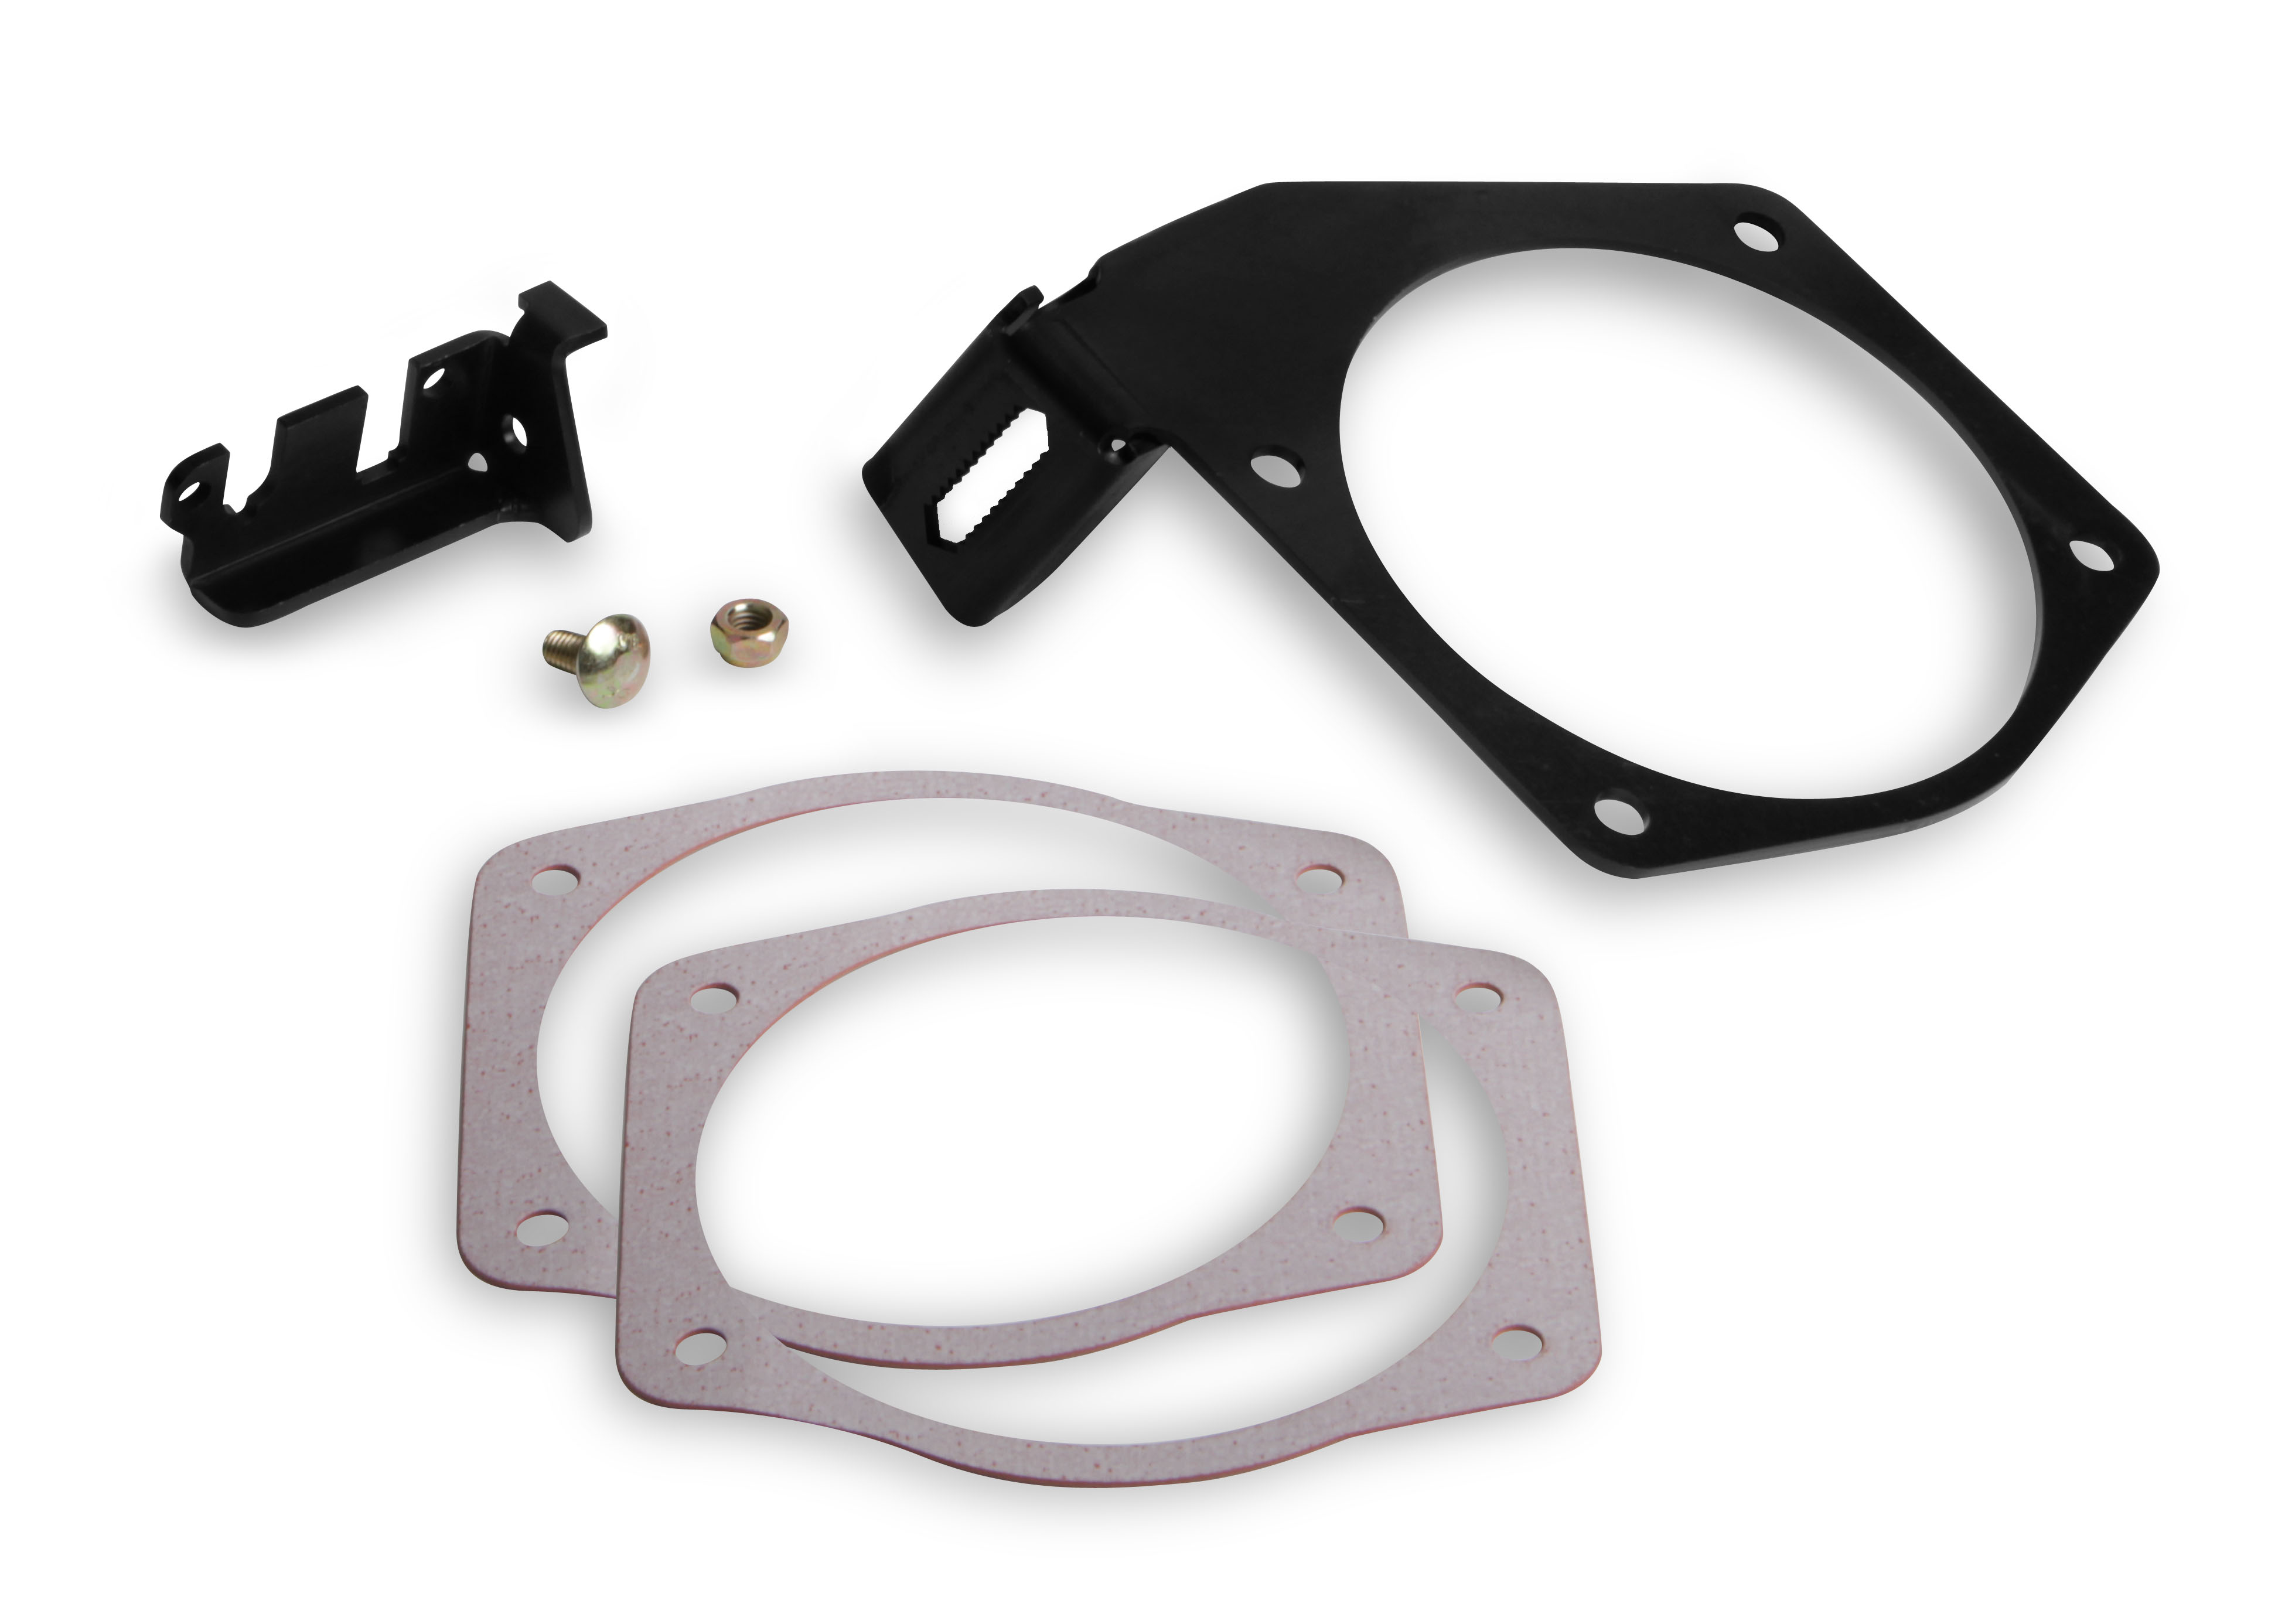 LS Holley Cable Bracket for 105mm Throttle Bodies & Factory or FAST Style Intakes